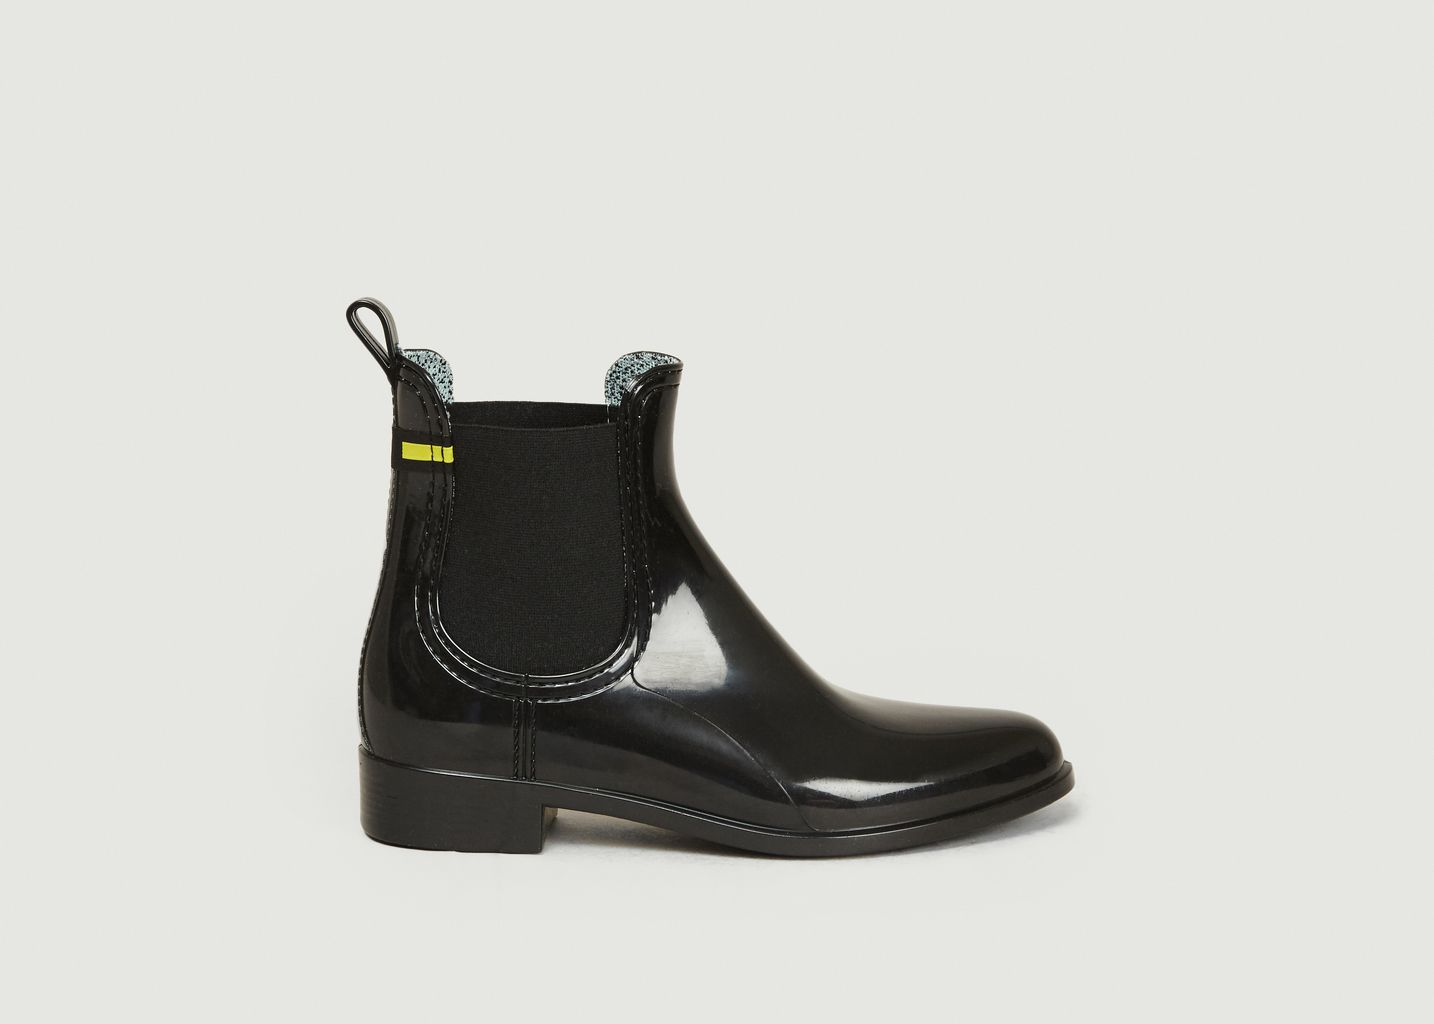 Bottines de Pluie Brisa - Lemon Jelly